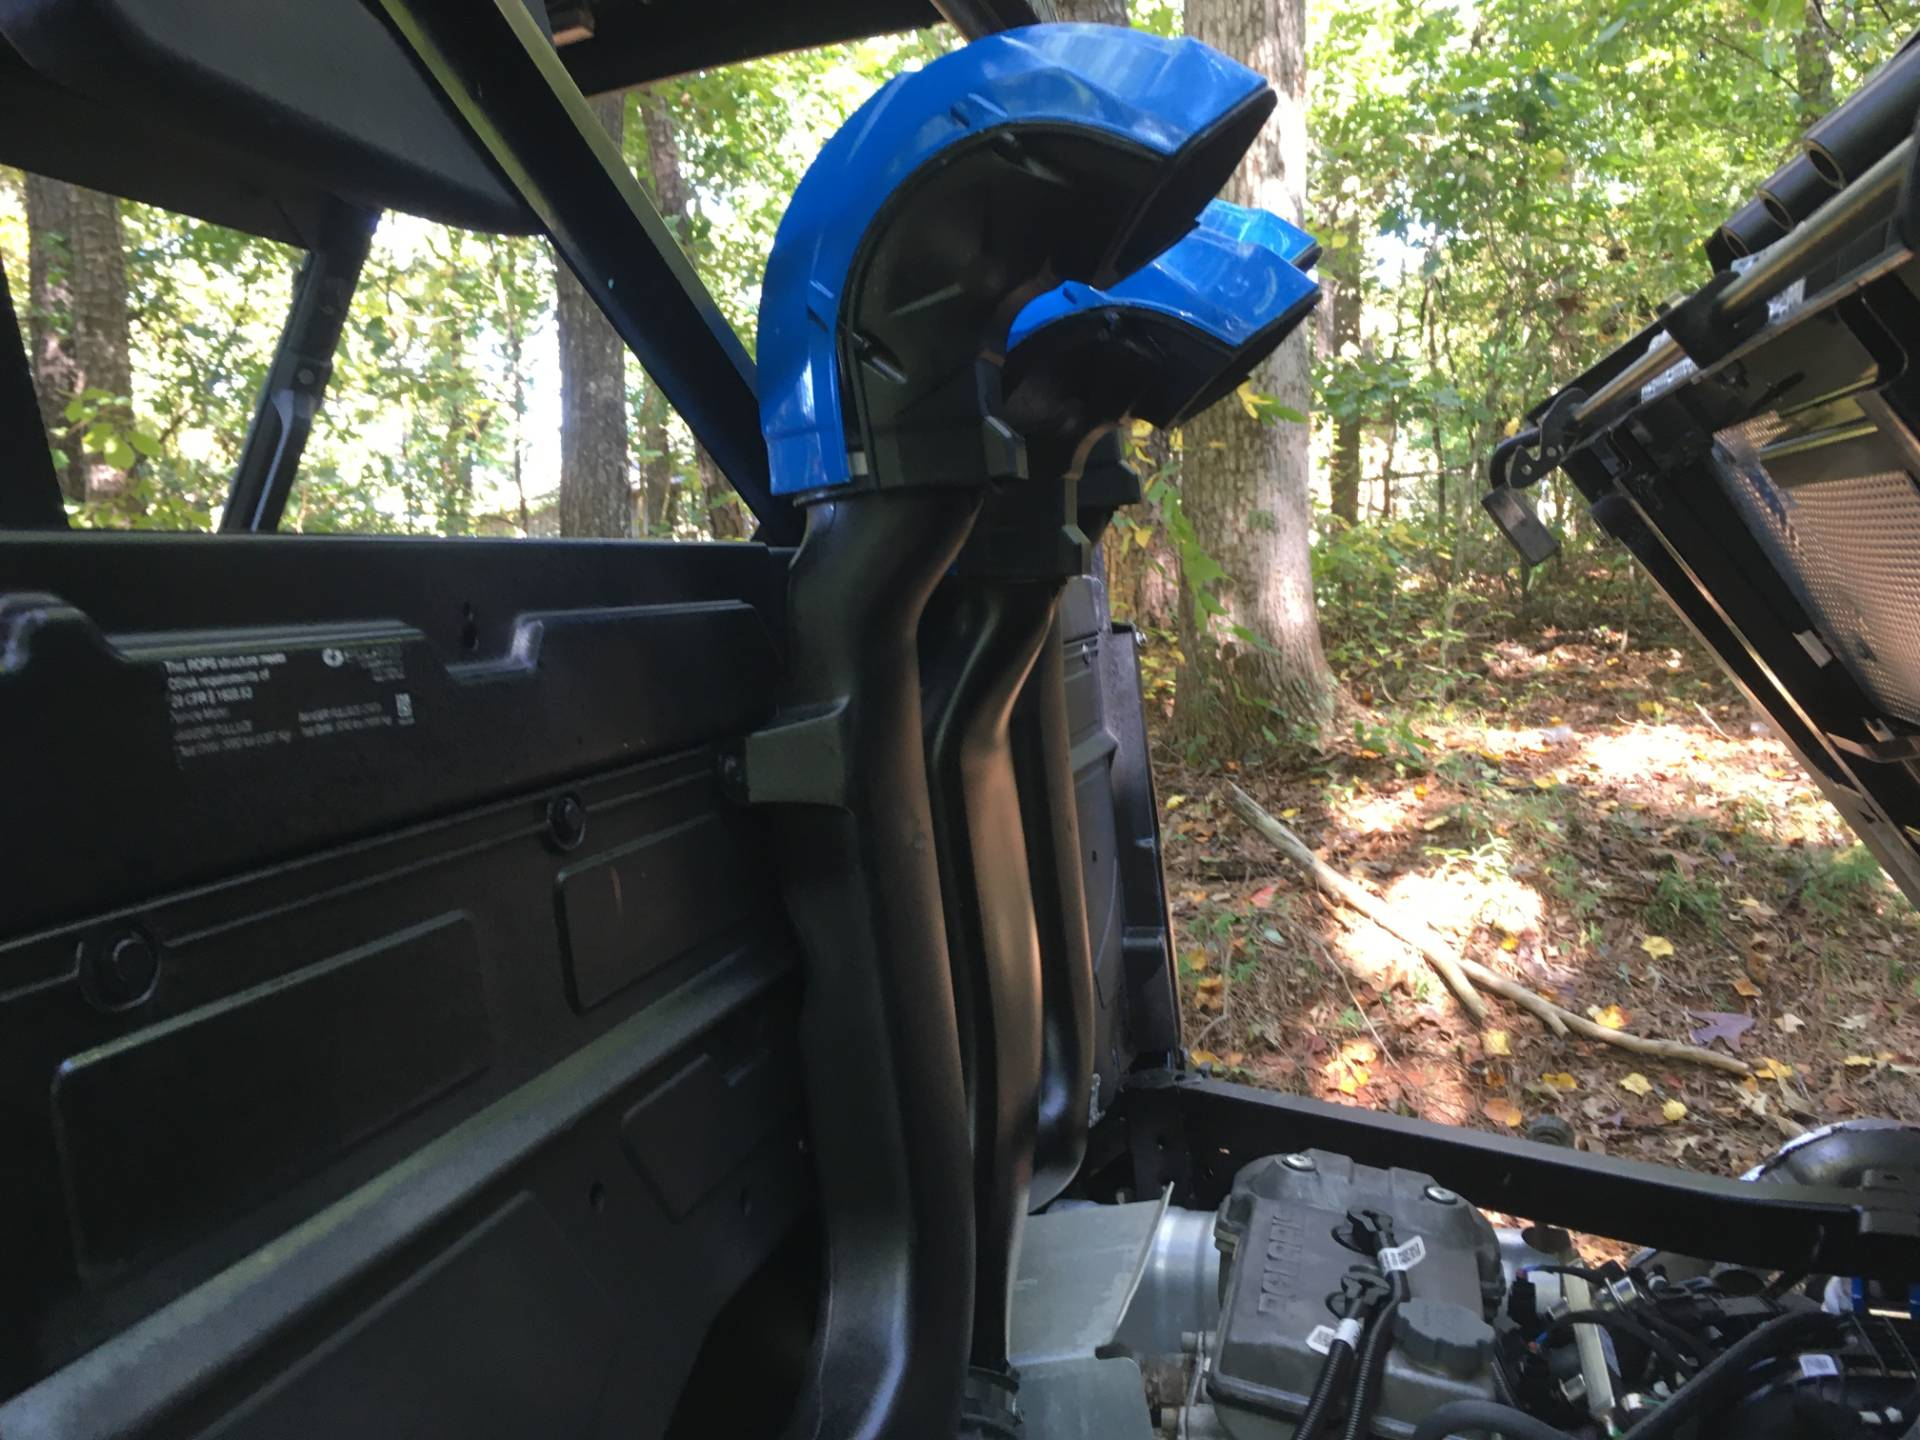 2017 POLARIS RANGER XP 1000 HIGH LIFTER EPS in Woodstock, Georgia - Photo 5